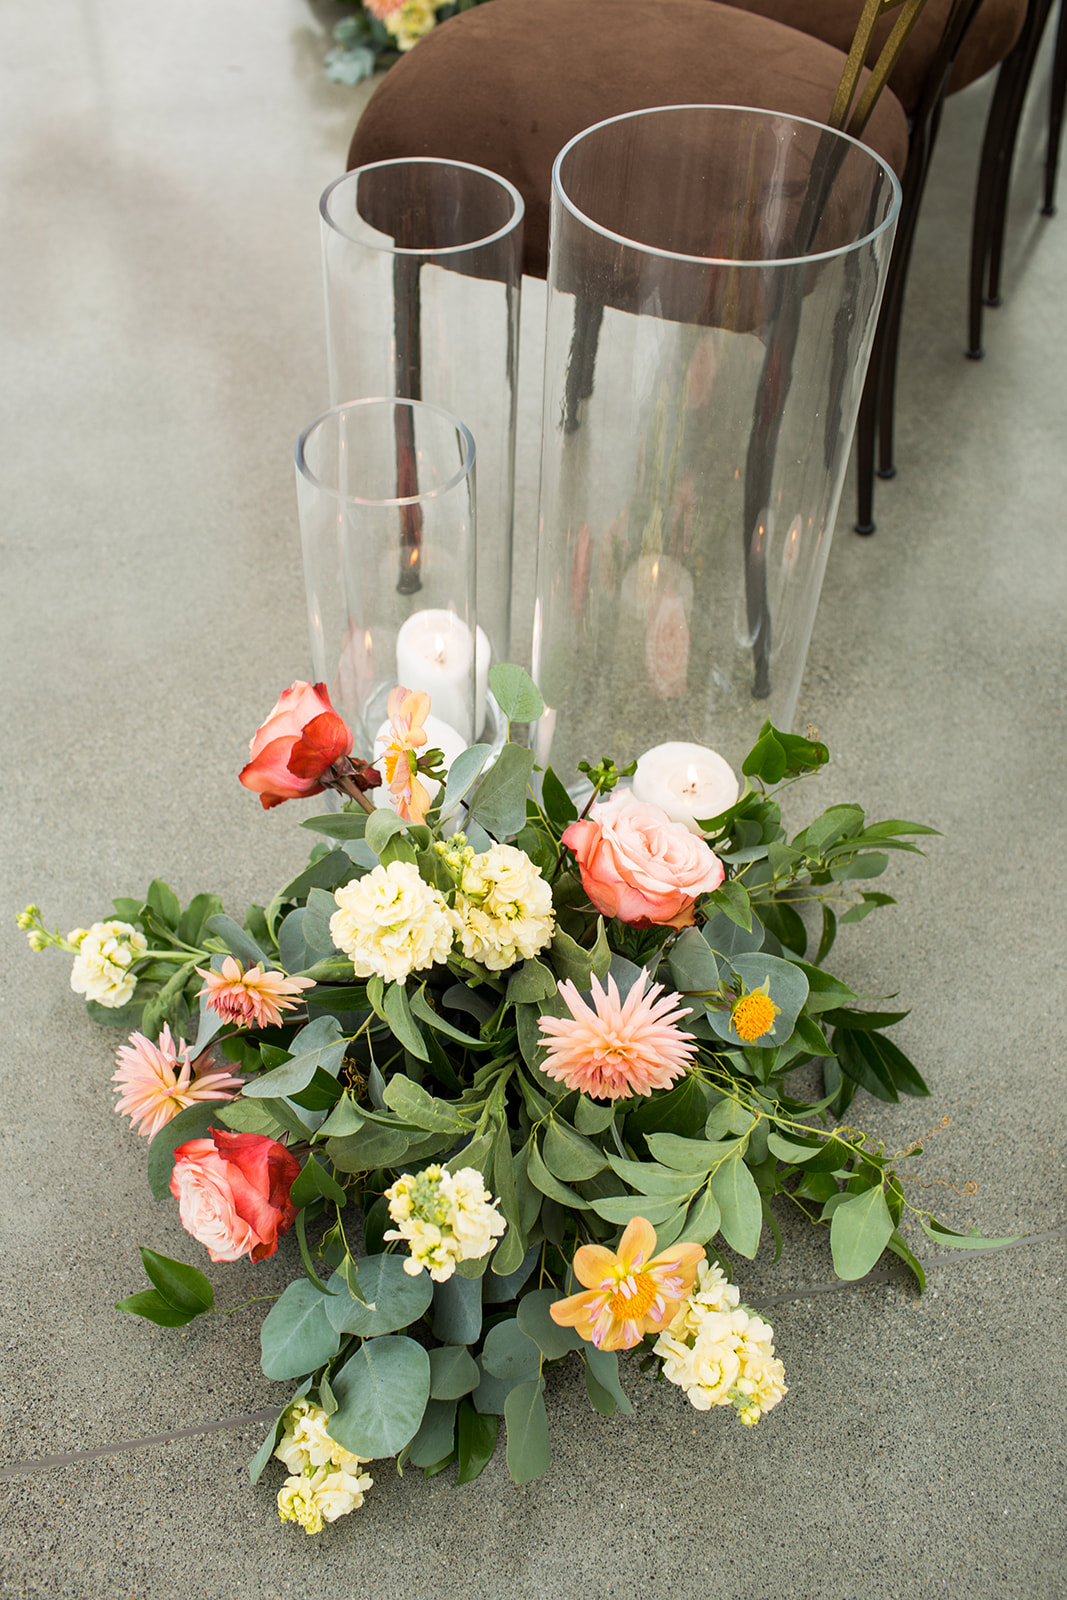 Low fall floral arrangement placed down the aisle of ceremony space with hurricane candles